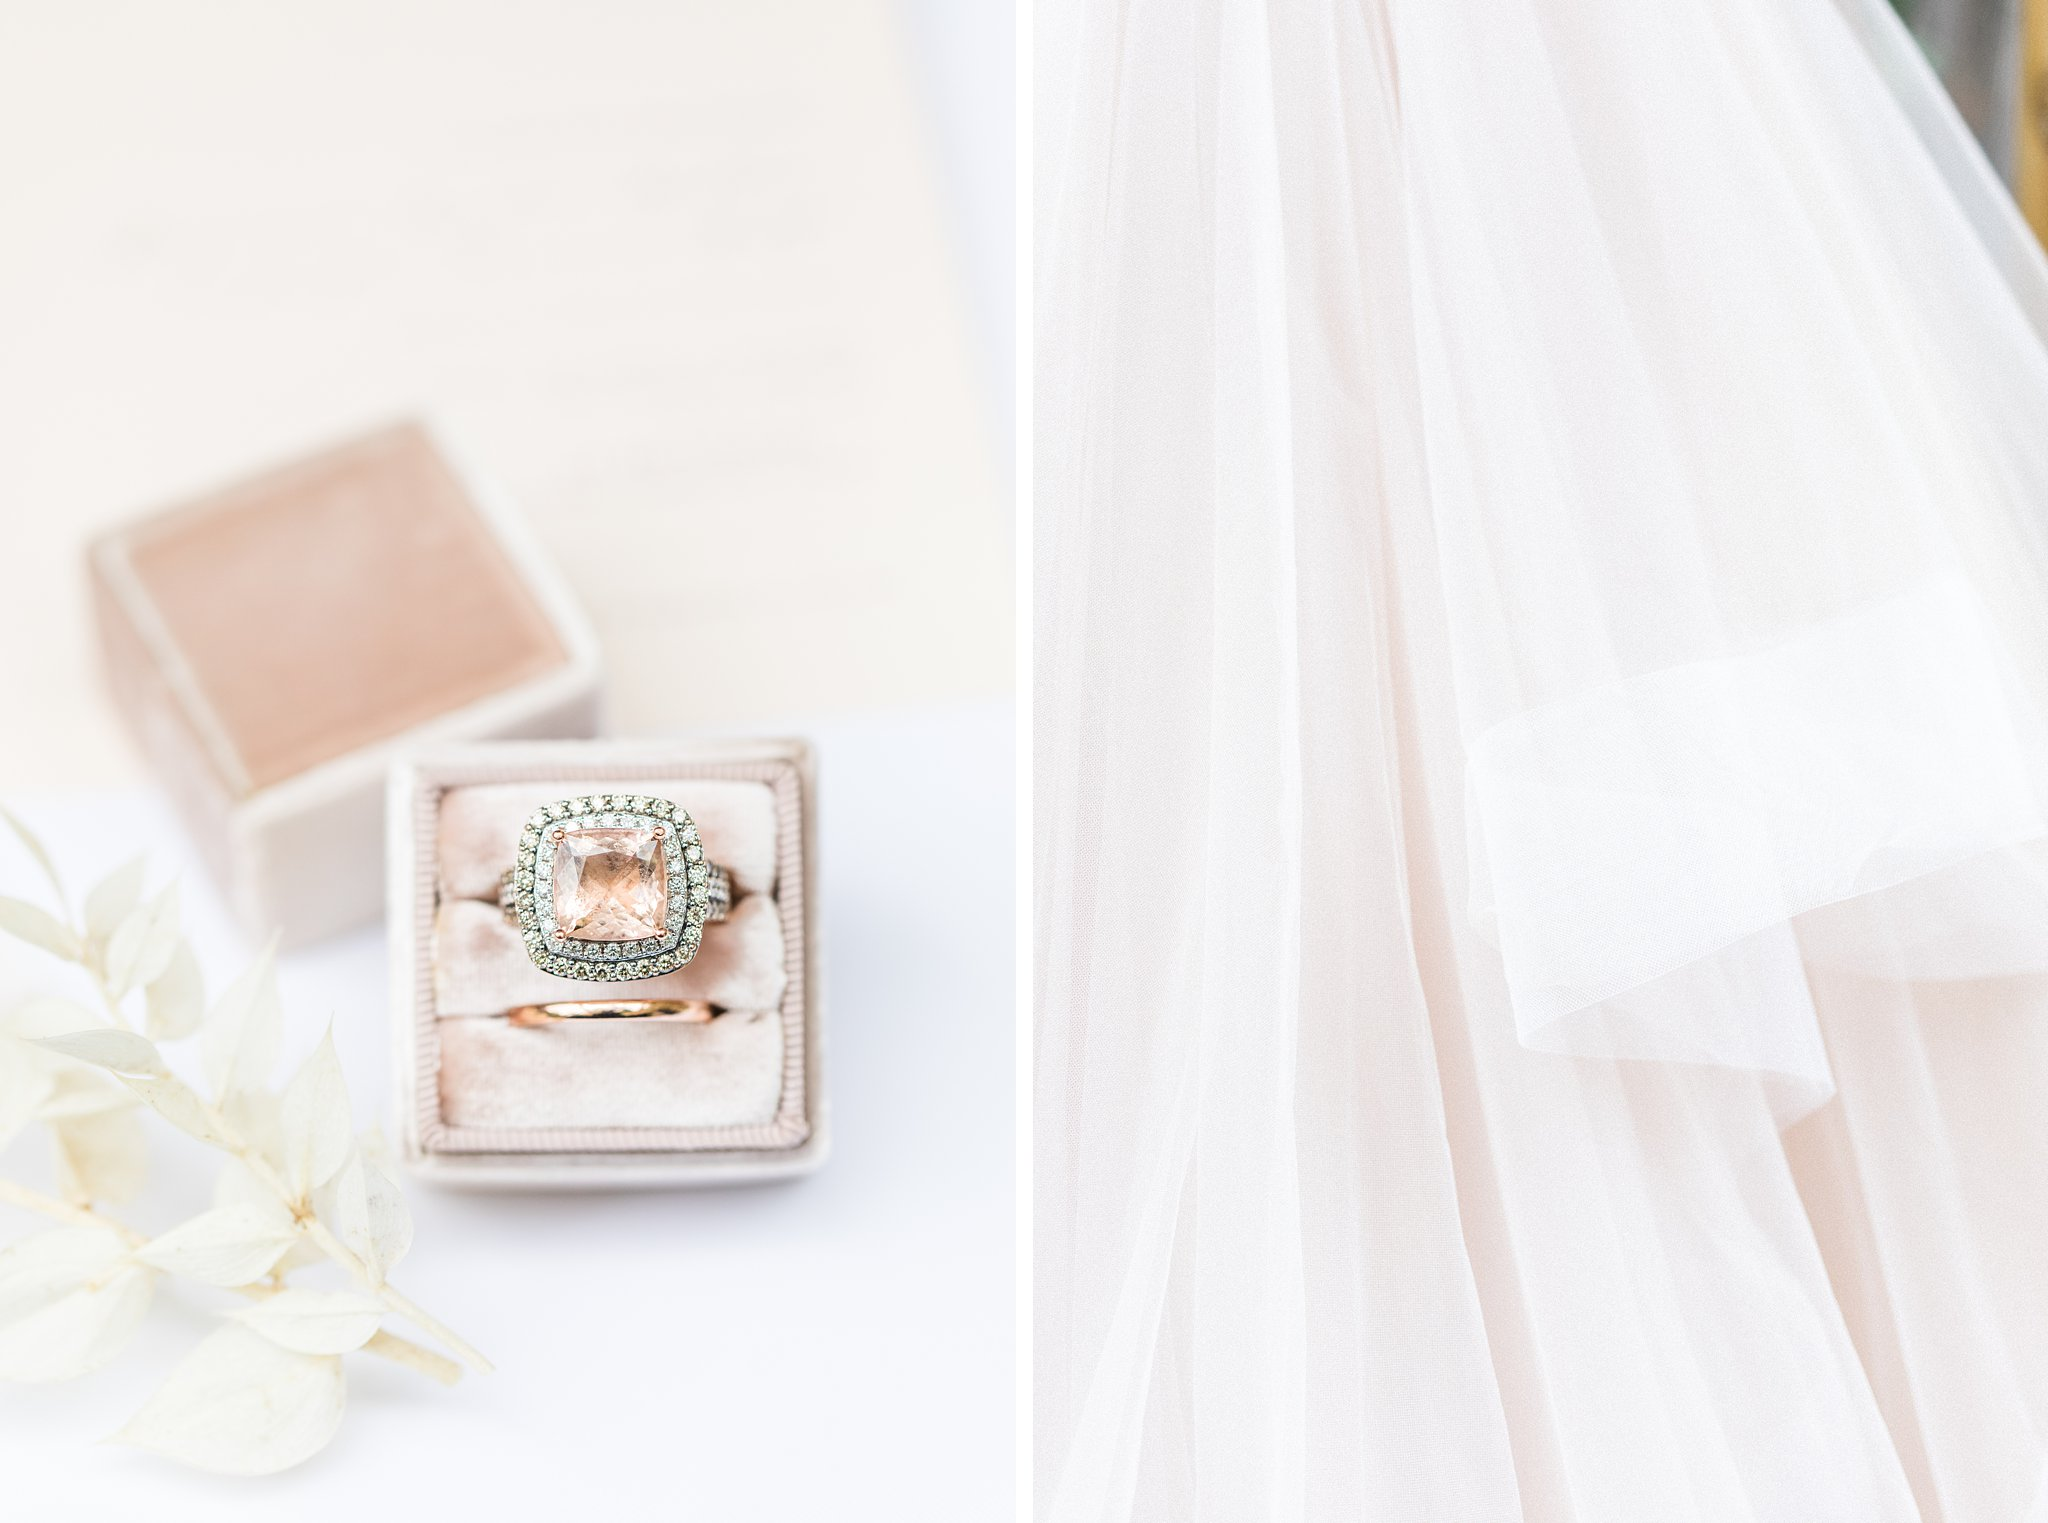 Mrs. Box, Gemstone ring, moscato, pink, Wakefield wedding photos, Le Belvedere